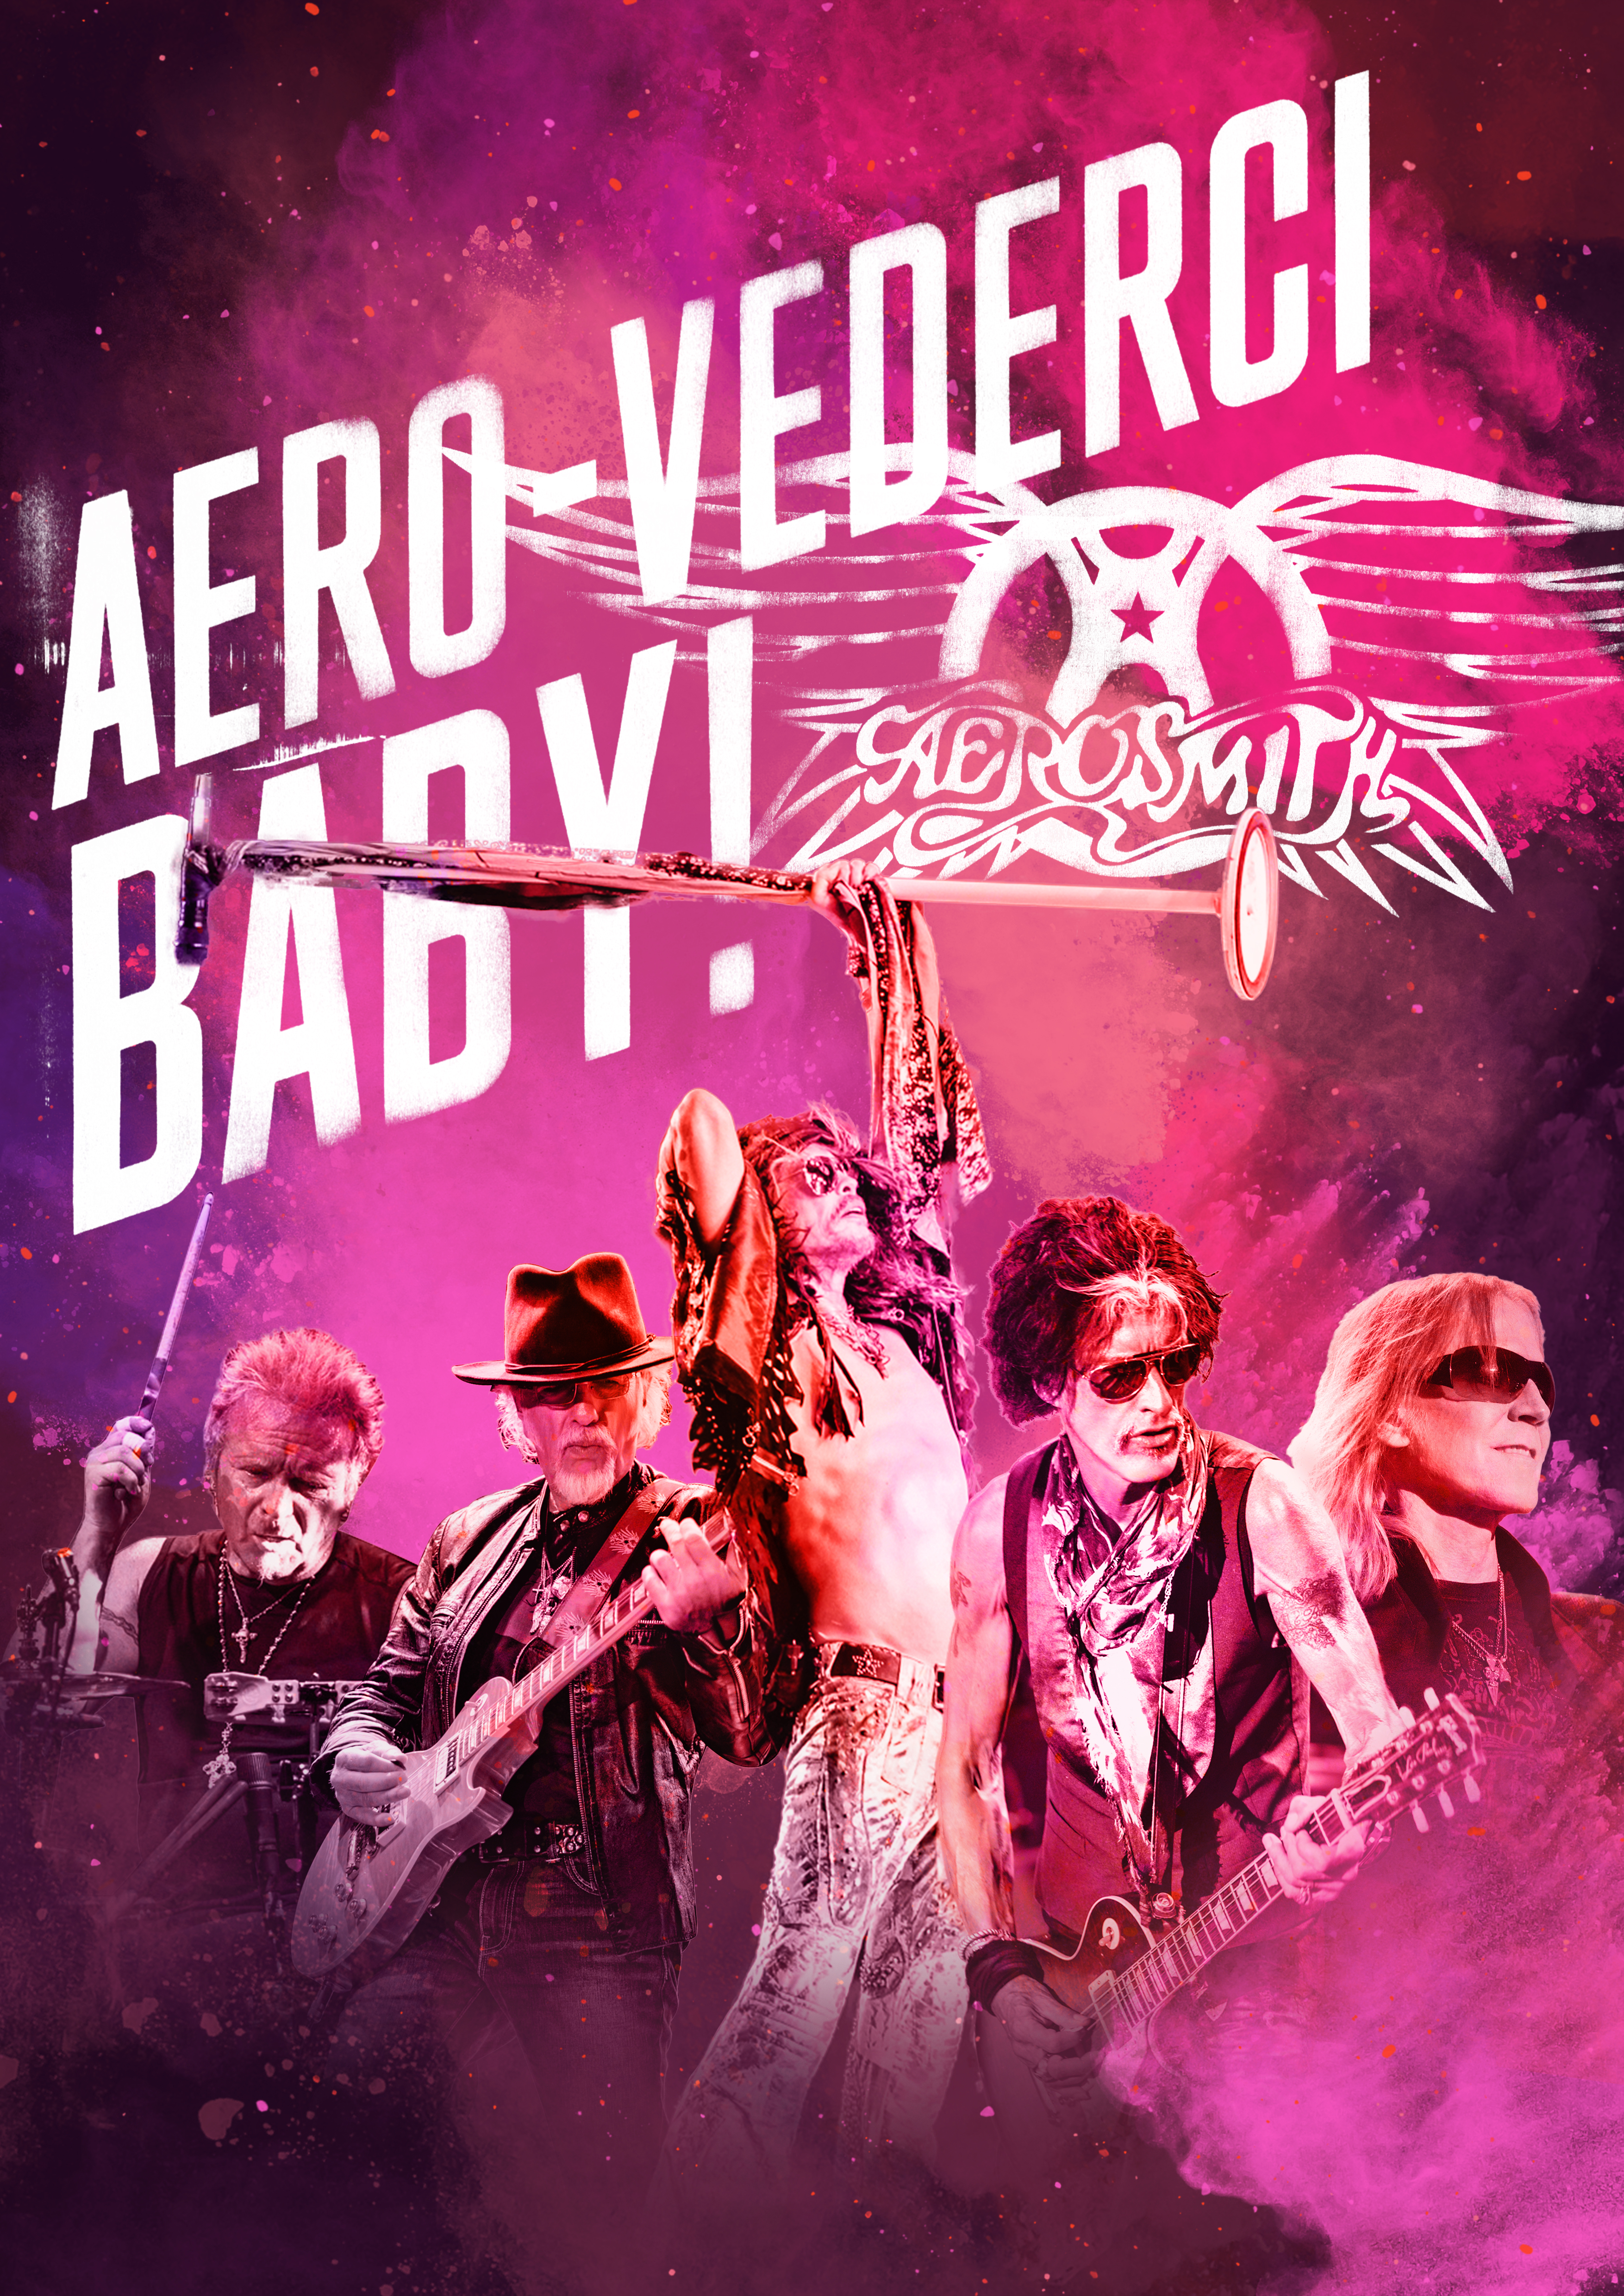 AERO-VEDERCI BABY! GET YOUR TICKETS NOW BEFORE THEY'RE GONE!